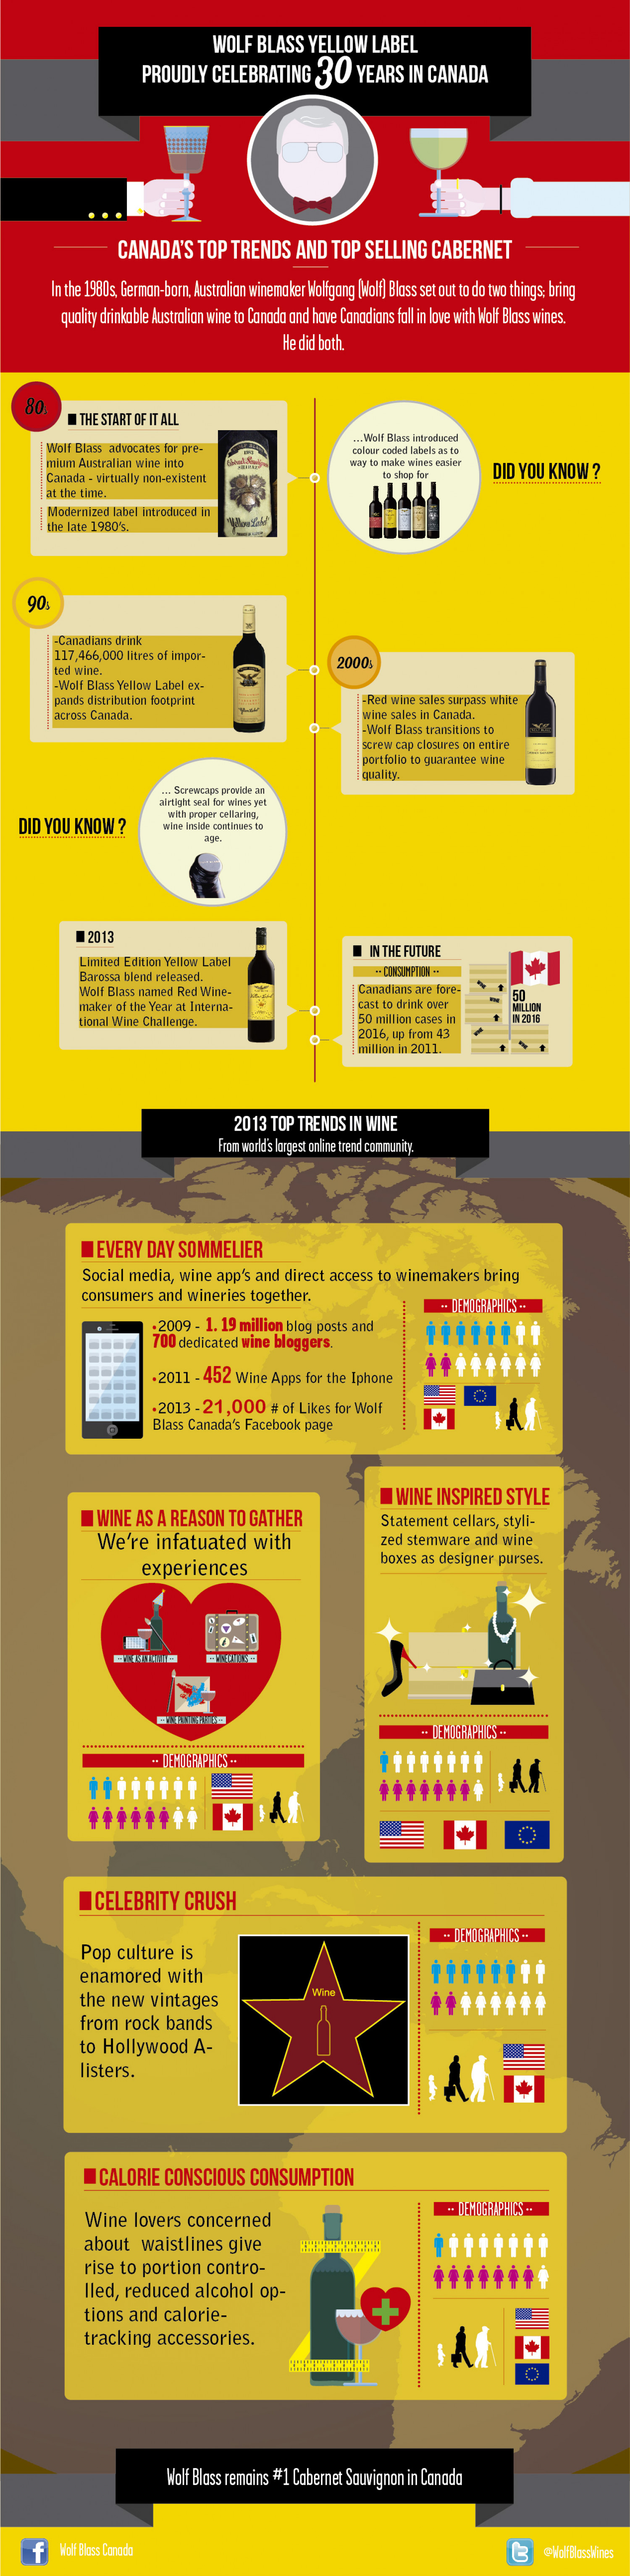 Wolf Blass Yellow Label: Proudly Celebrating 30 years in Canada Infographic